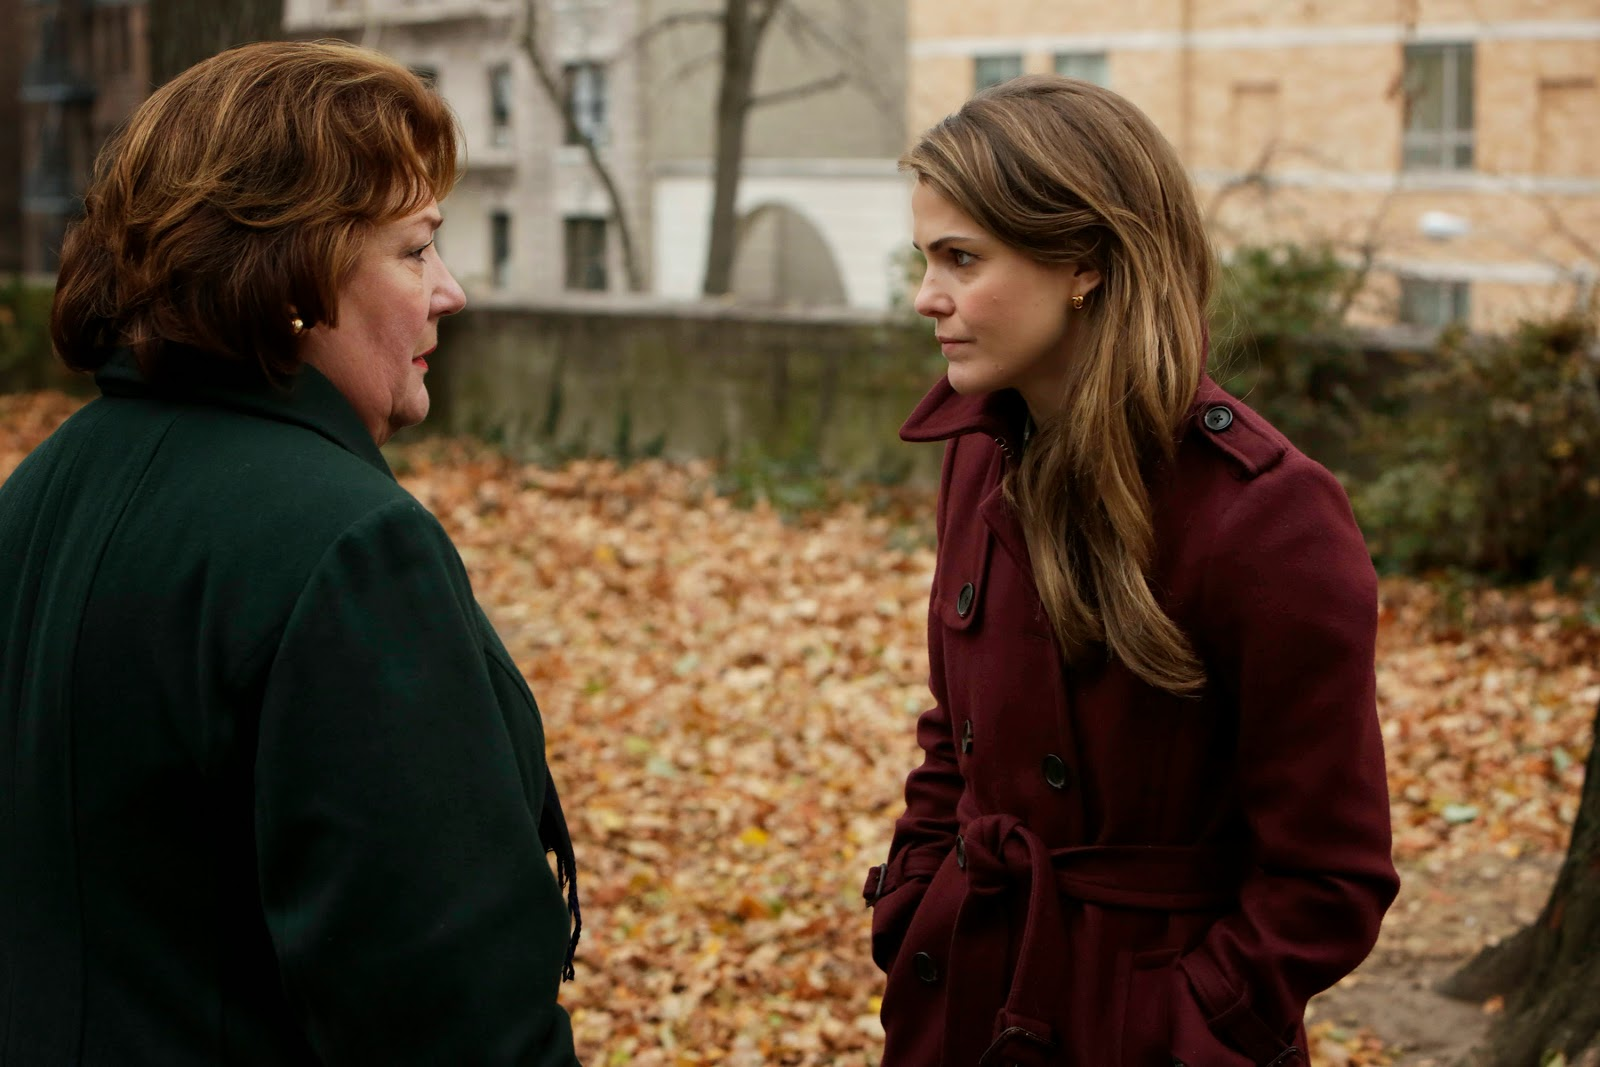 The Americans - Episode 2.04 - A Little Night Music 02